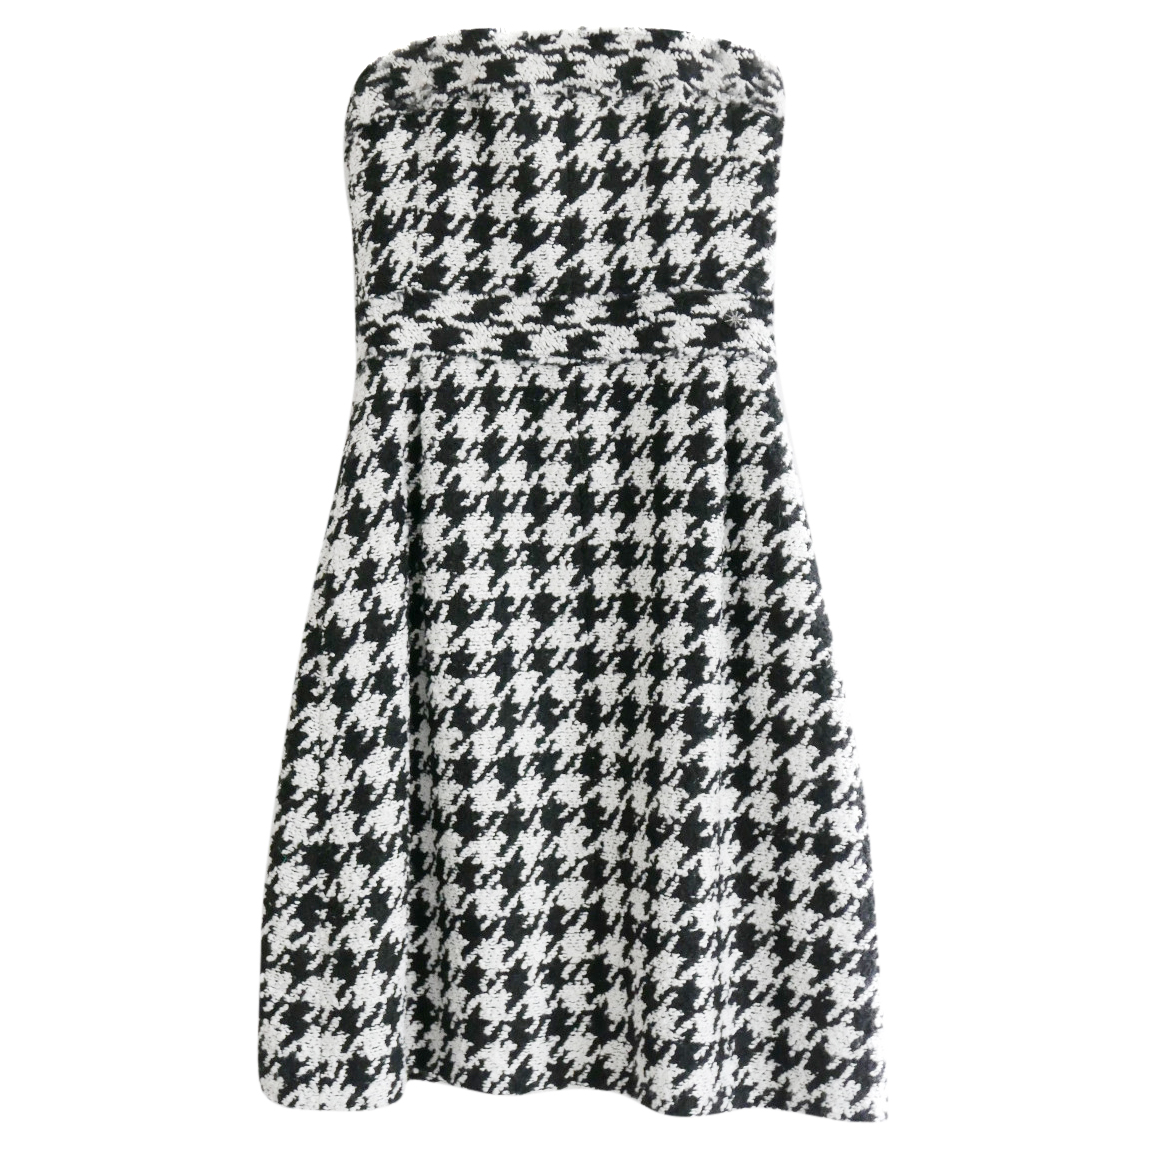 Chanel Pre-Fall '16 Houndstooth Strapless Wool Blend Dress